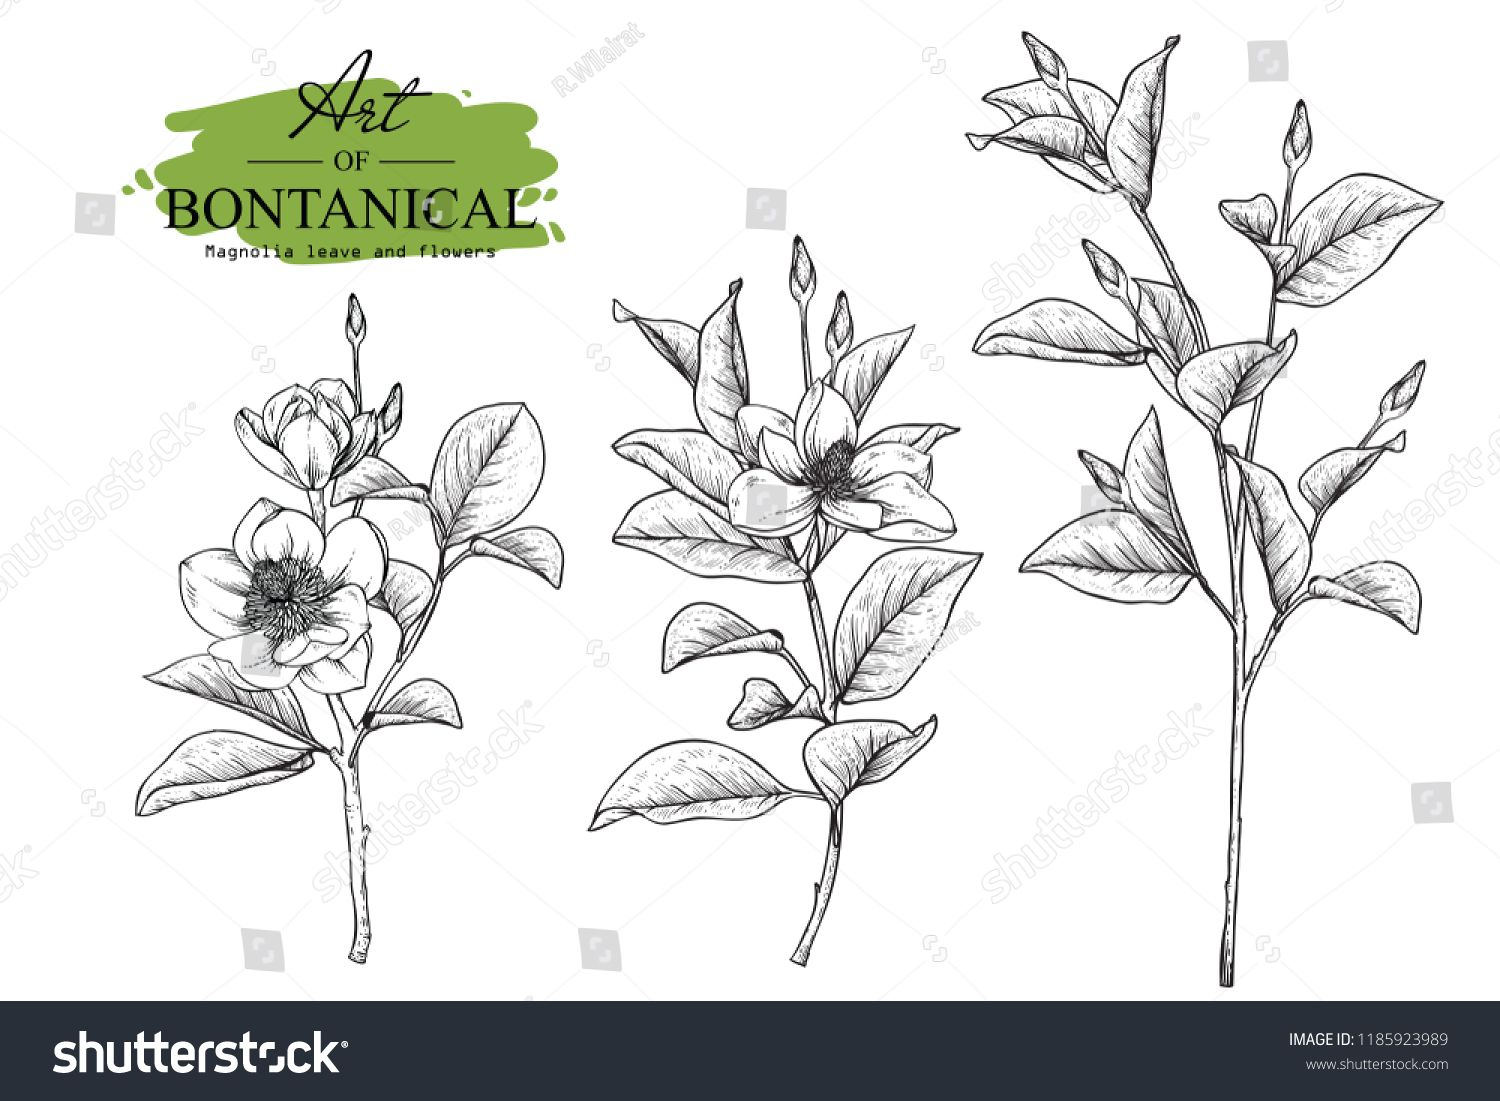 Sketch Floral Botany Set Magnolia Flower And Leaf Drawings Black And White With Line Art On White Backgrounds Hand Flower Drawing Floral Botany Leaf Drawing